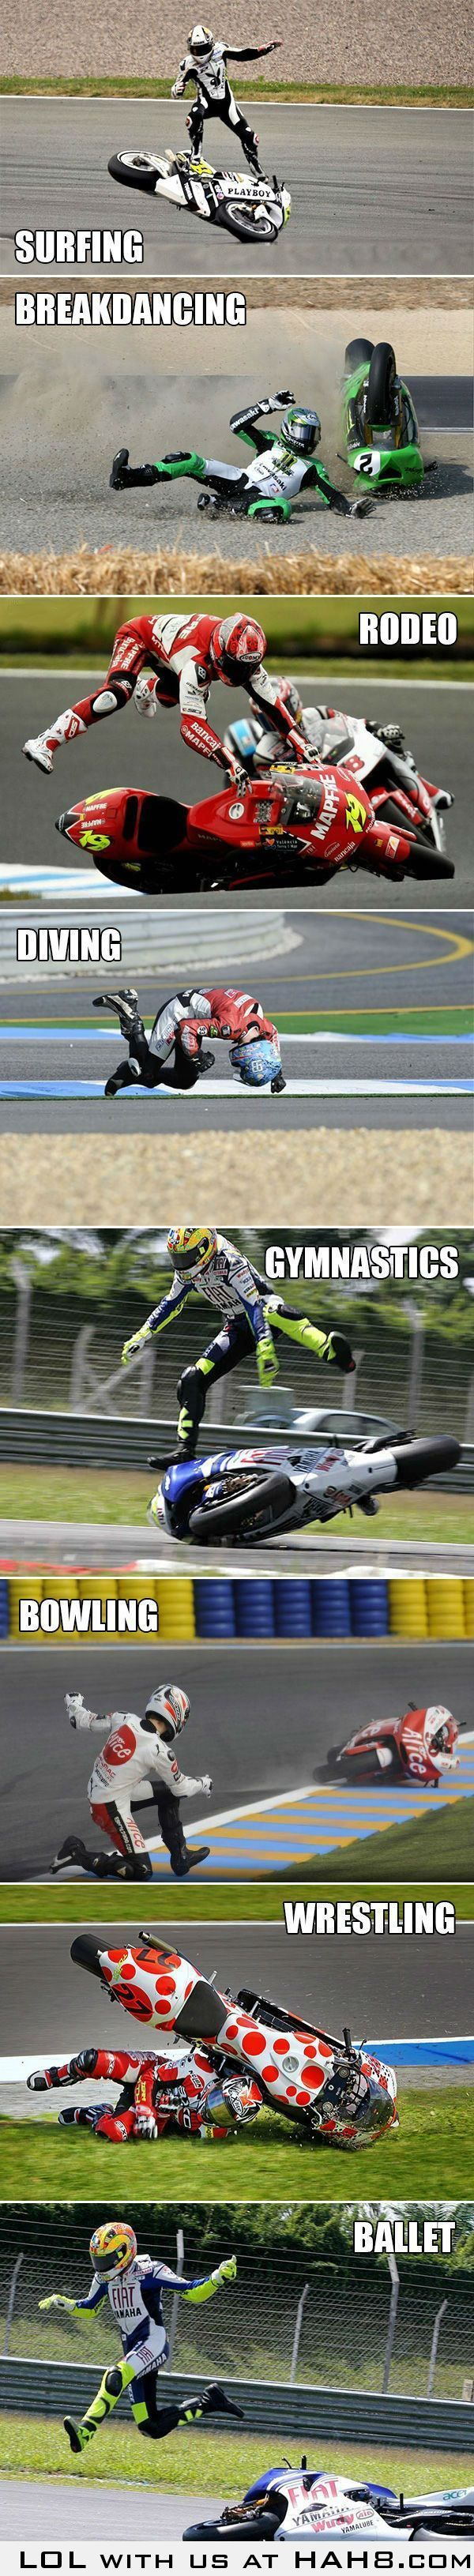 the many skills of a bike racer....  loved the ballt